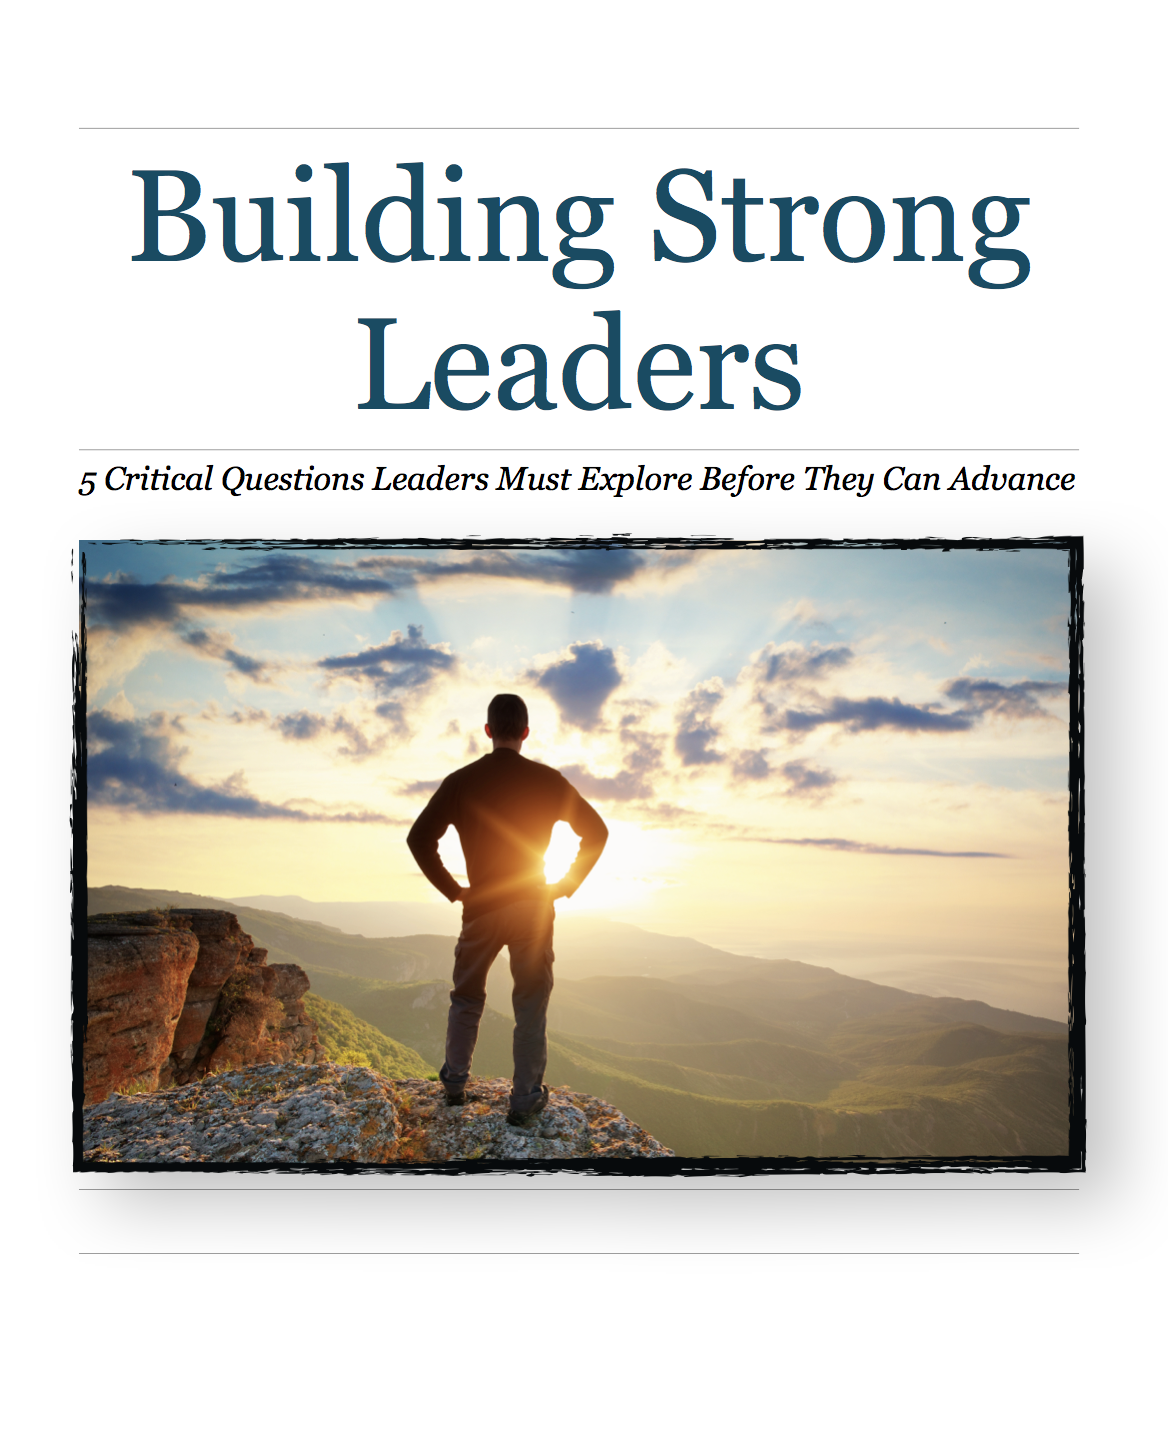 Building Strong Leaders Cover.png